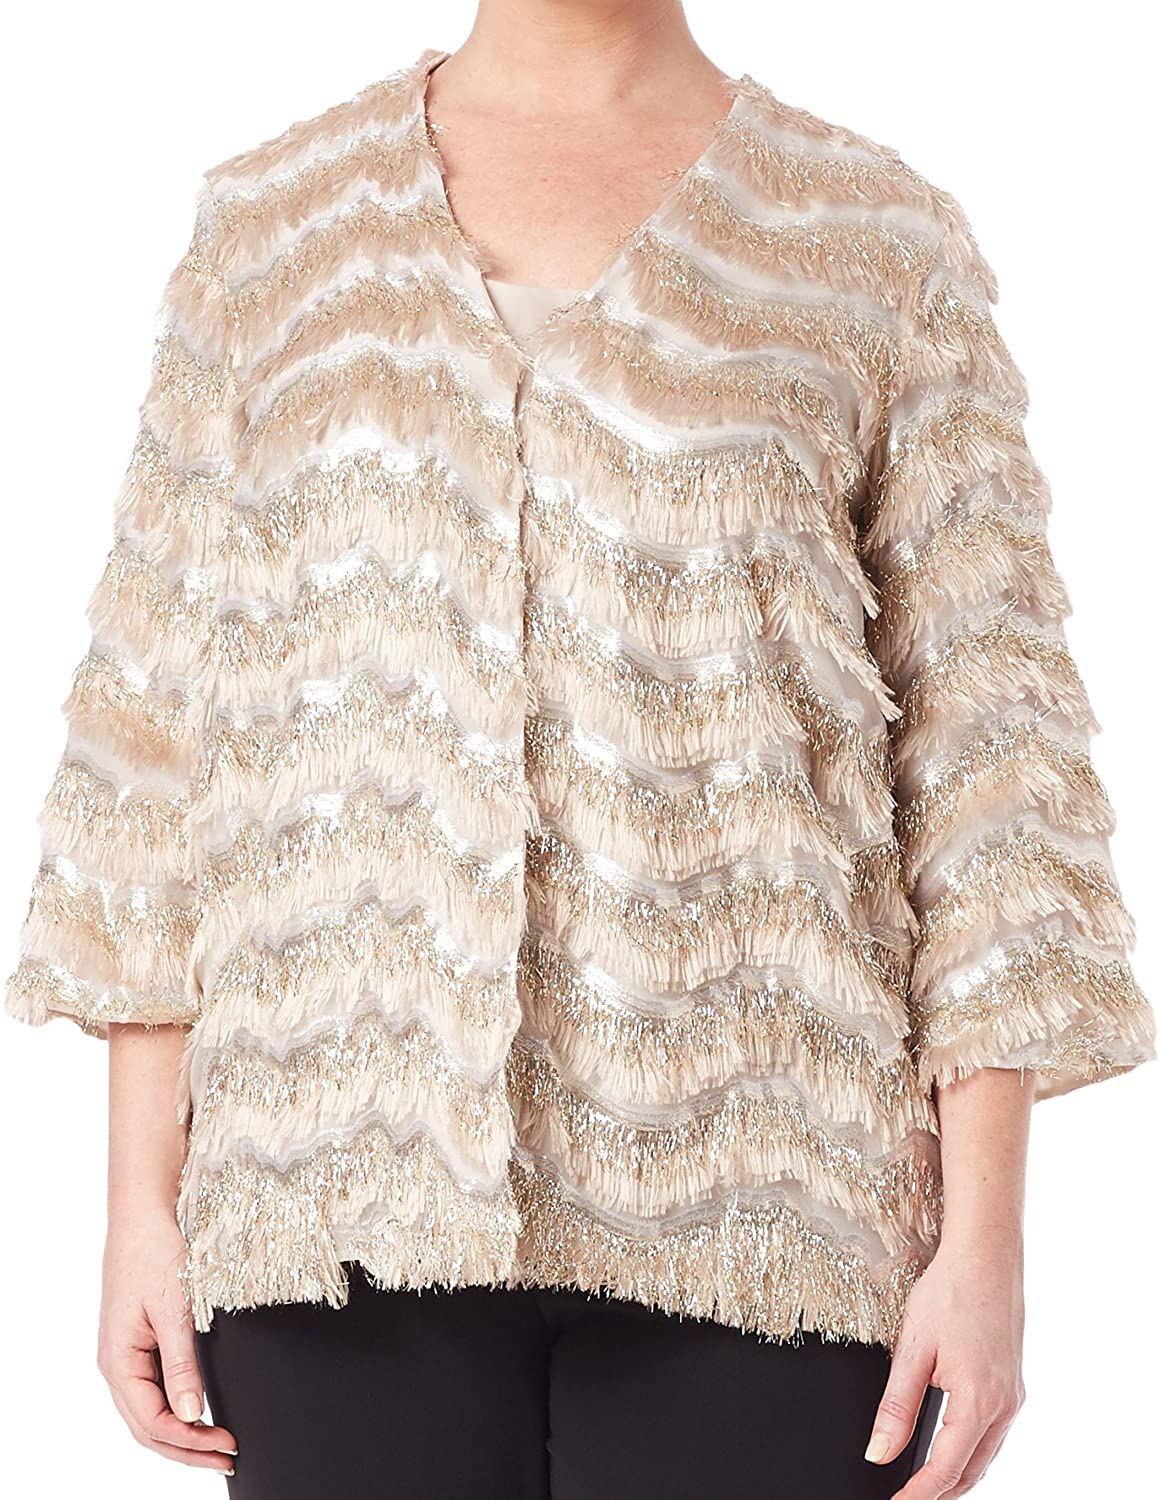 Marina Rinaldi Women's Cincin Fringe Detailed Jacket, Beige/ 18W / 27